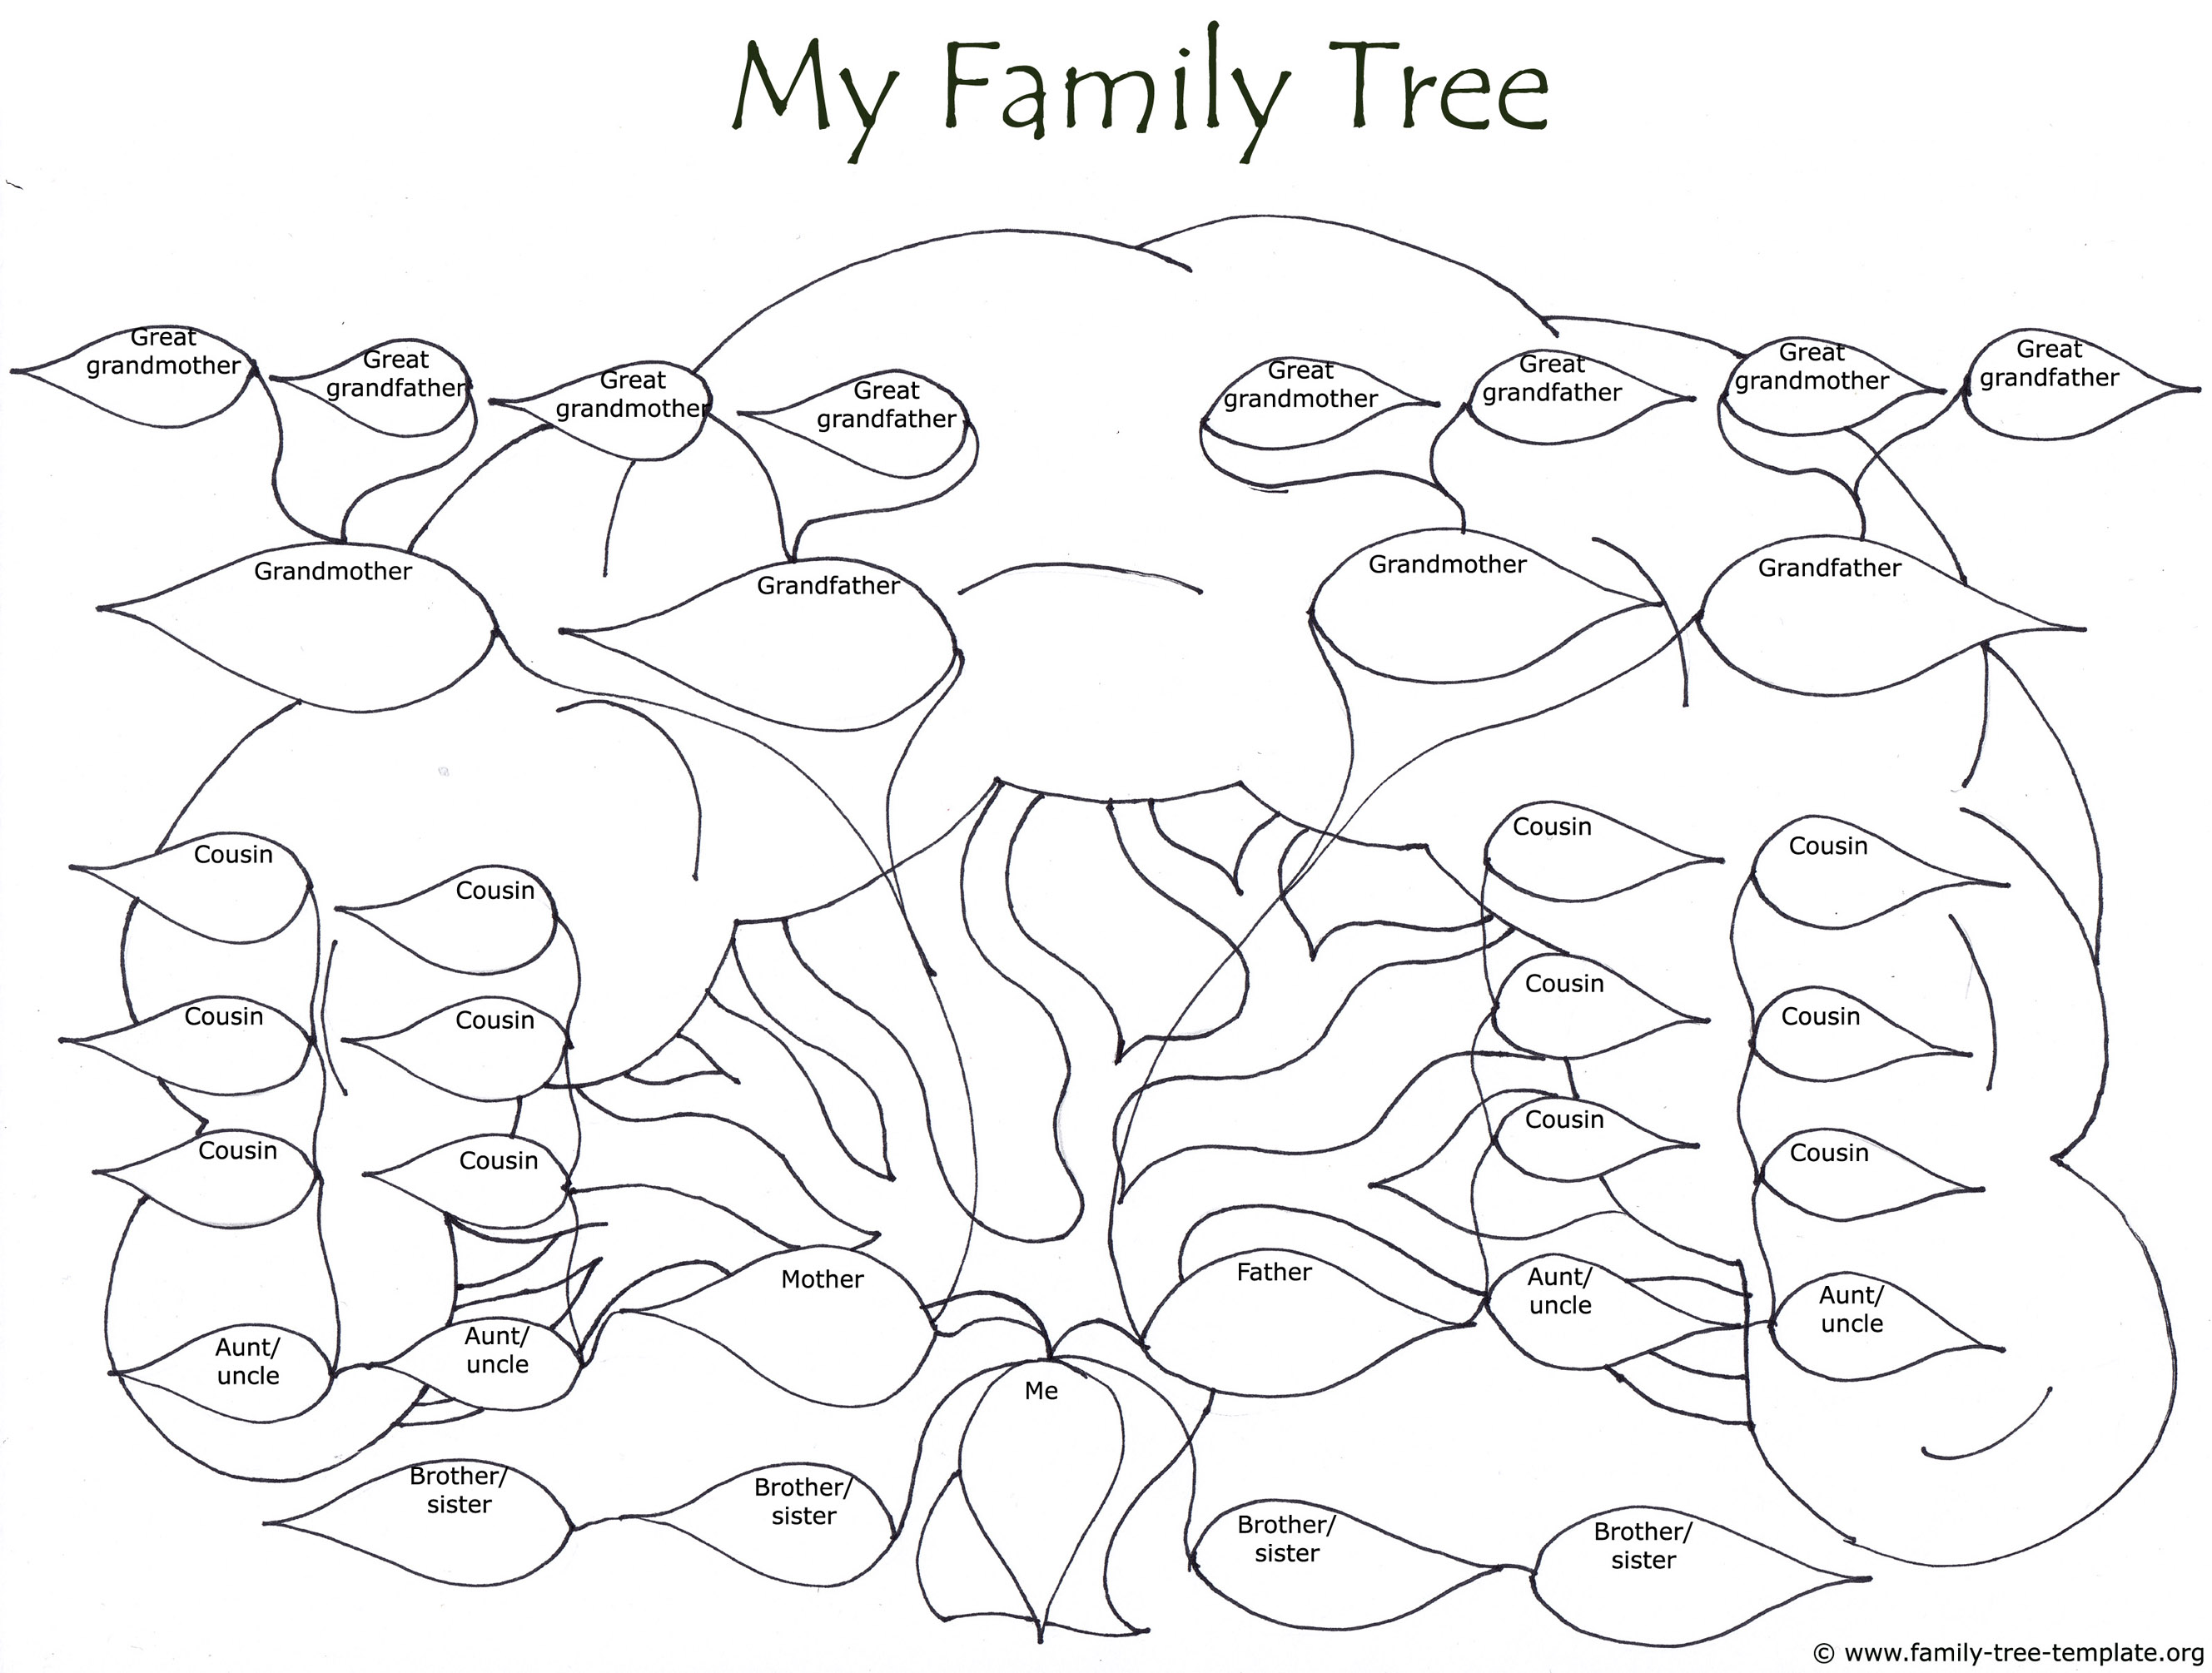 Huge family tree drawing to color